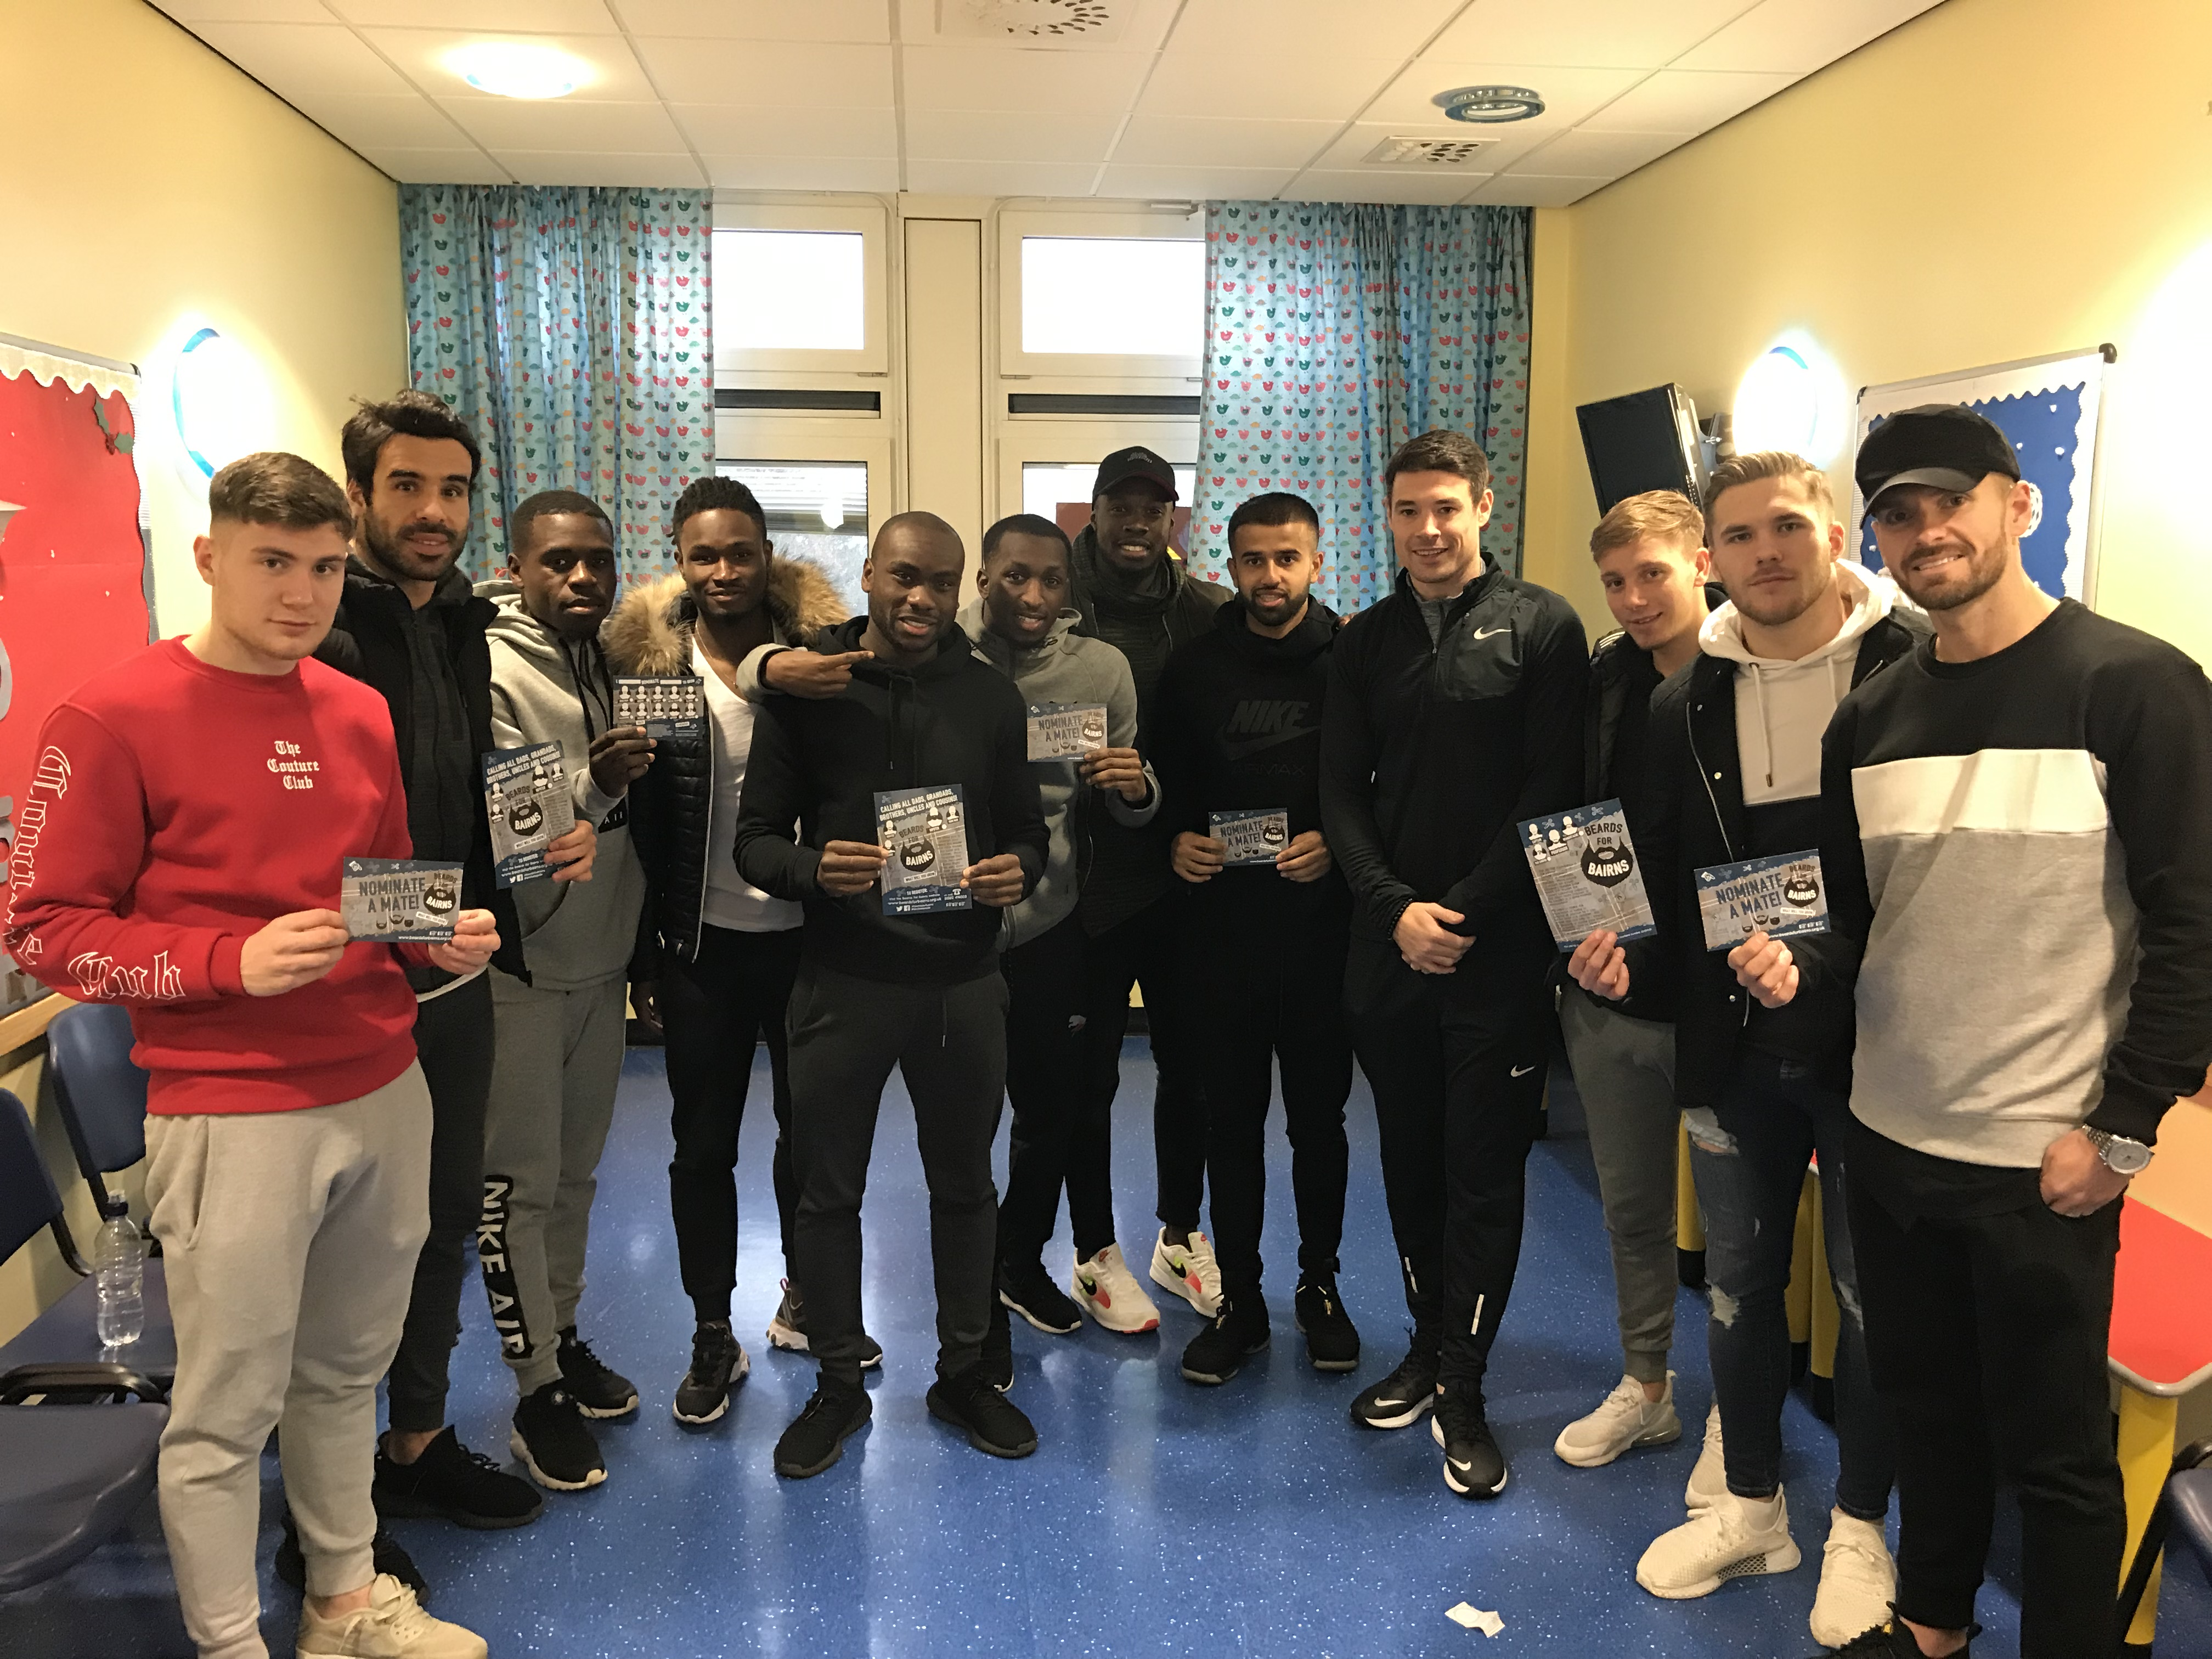 Some of the Dundee FC players at Ninewells promoting Beards for Bairns.